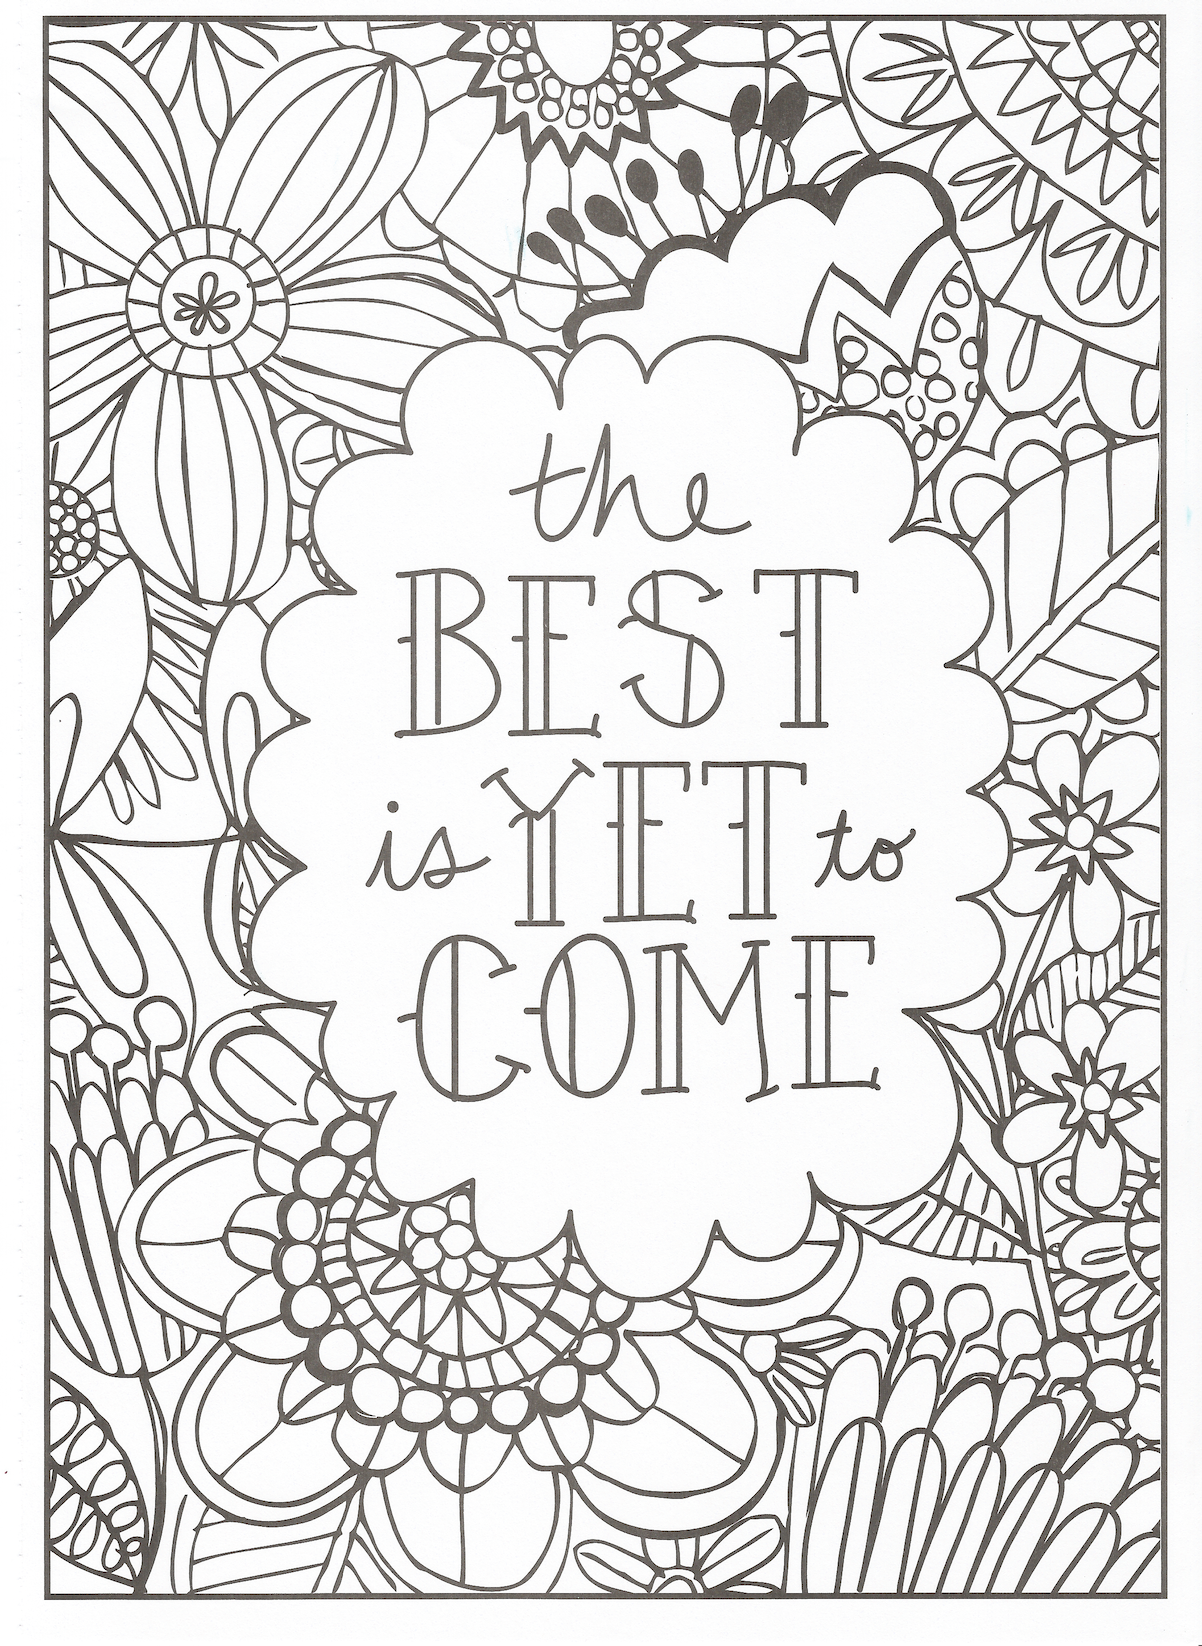 Timeless Creations Creative Quotes Coloring Page The ...